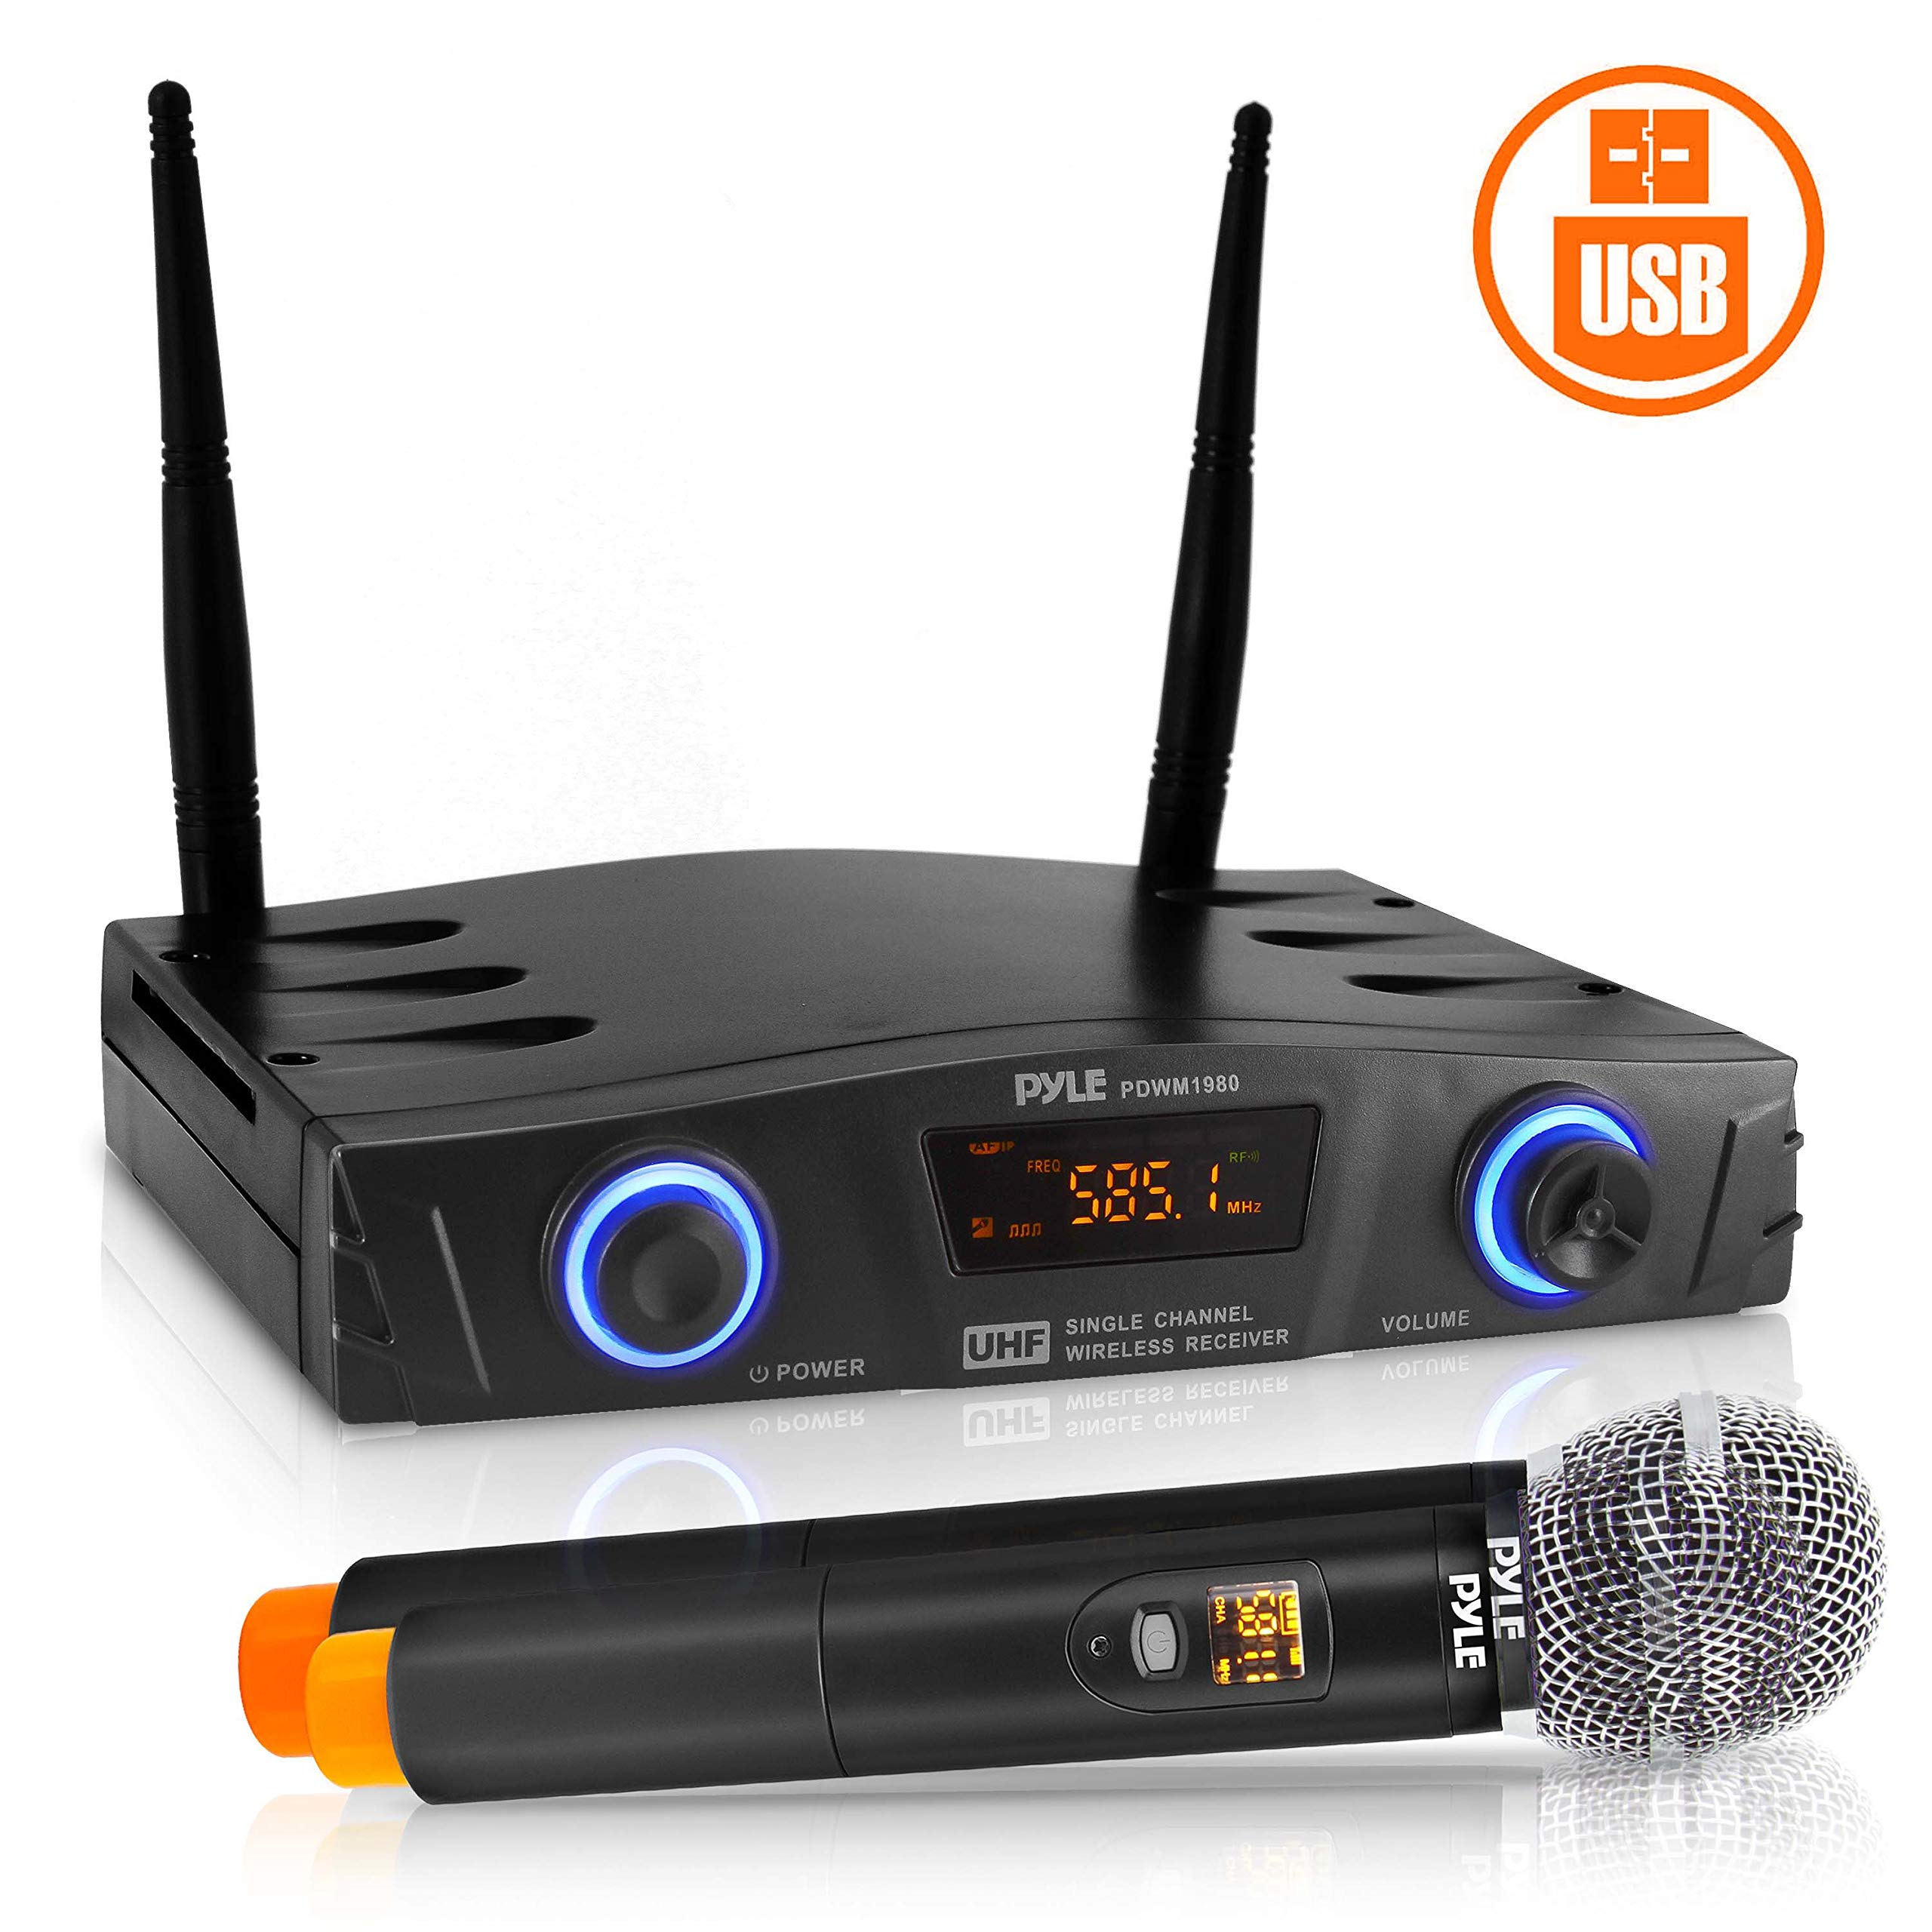 Compact UHF Wireless Microphone System - Pro Portable 1 Channel Desktop Digital Mic Receiver Set w/ 1 Handheld Mic, Receiver Base, USB Cable, Battery, XLR, for Home, PA, Karaoke, DJ - Pyle PDWM1980 by Pyle